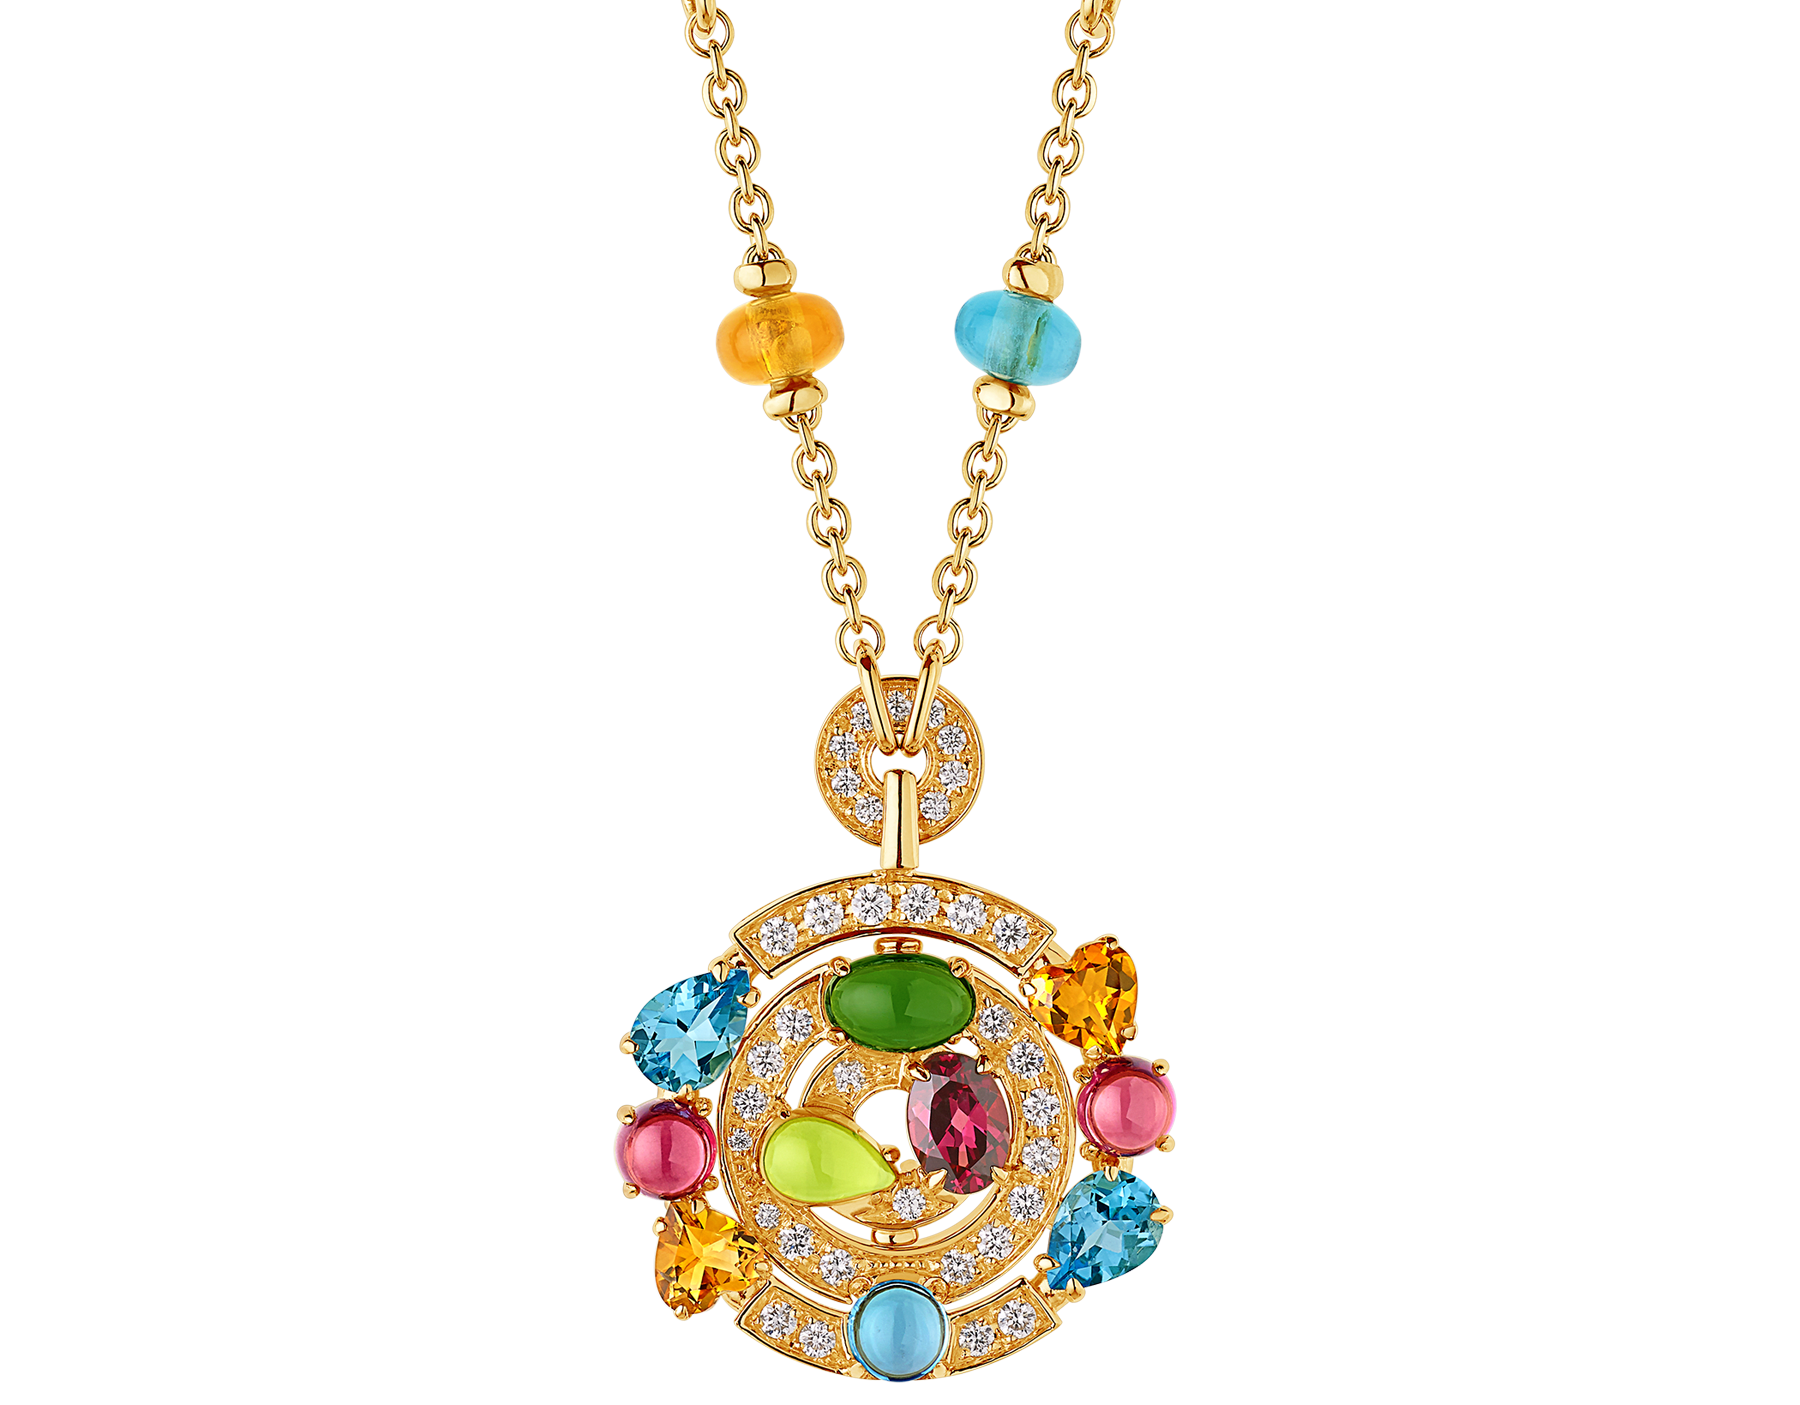 Astrale 18 kt yellow gold large pendant necklace set with blue topazes, amethysts, green tourmalines, peridots, citrine quartz, rhodolite garnets and pavé diamonds 338229 image 1